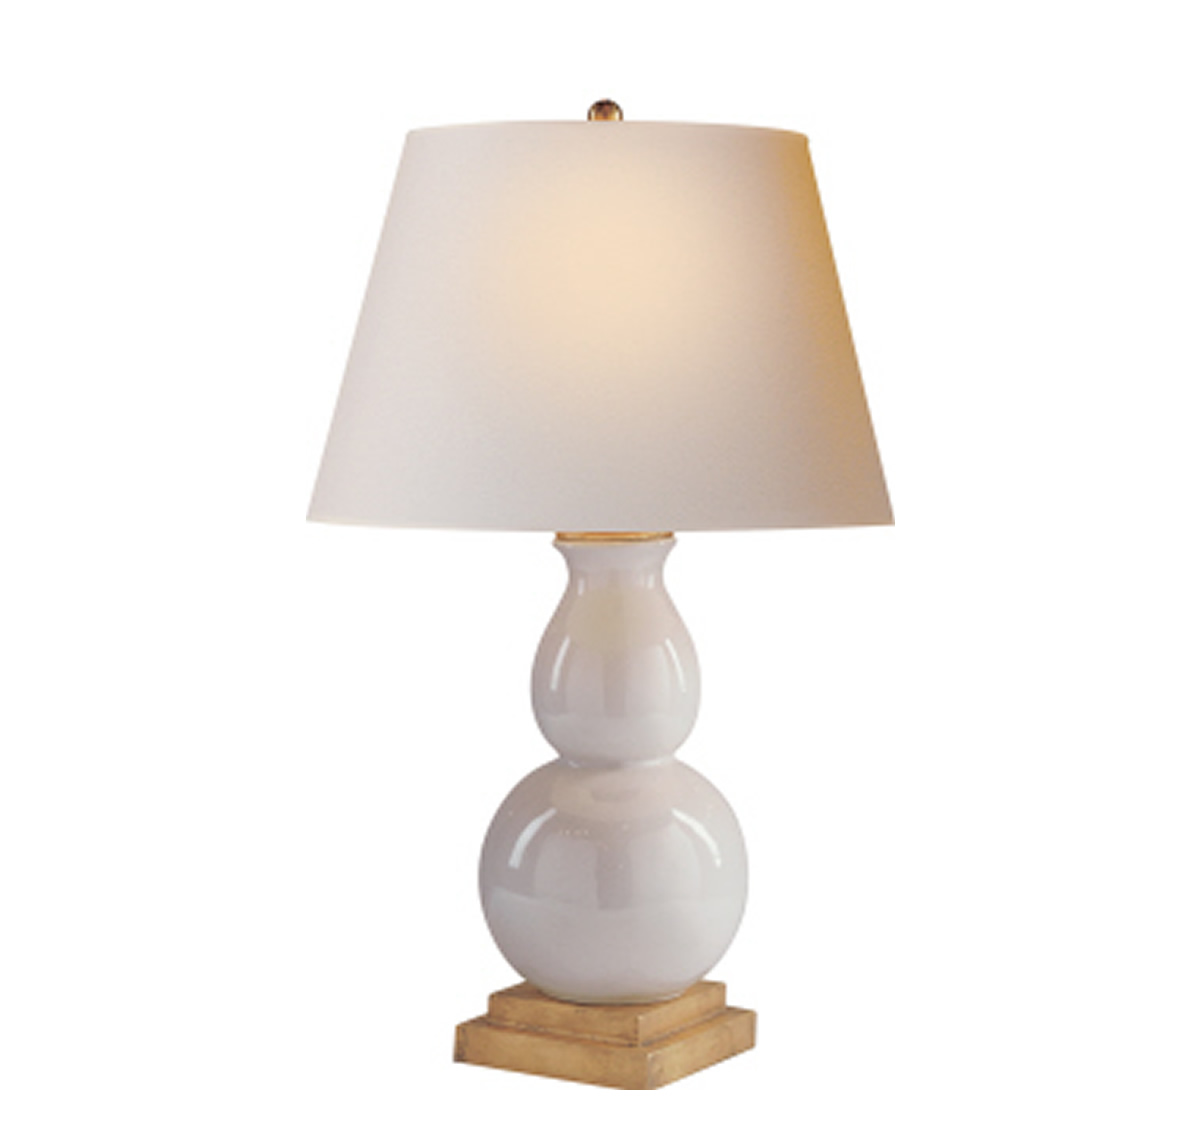 Gourd Table Lamp The Kellogg Collection